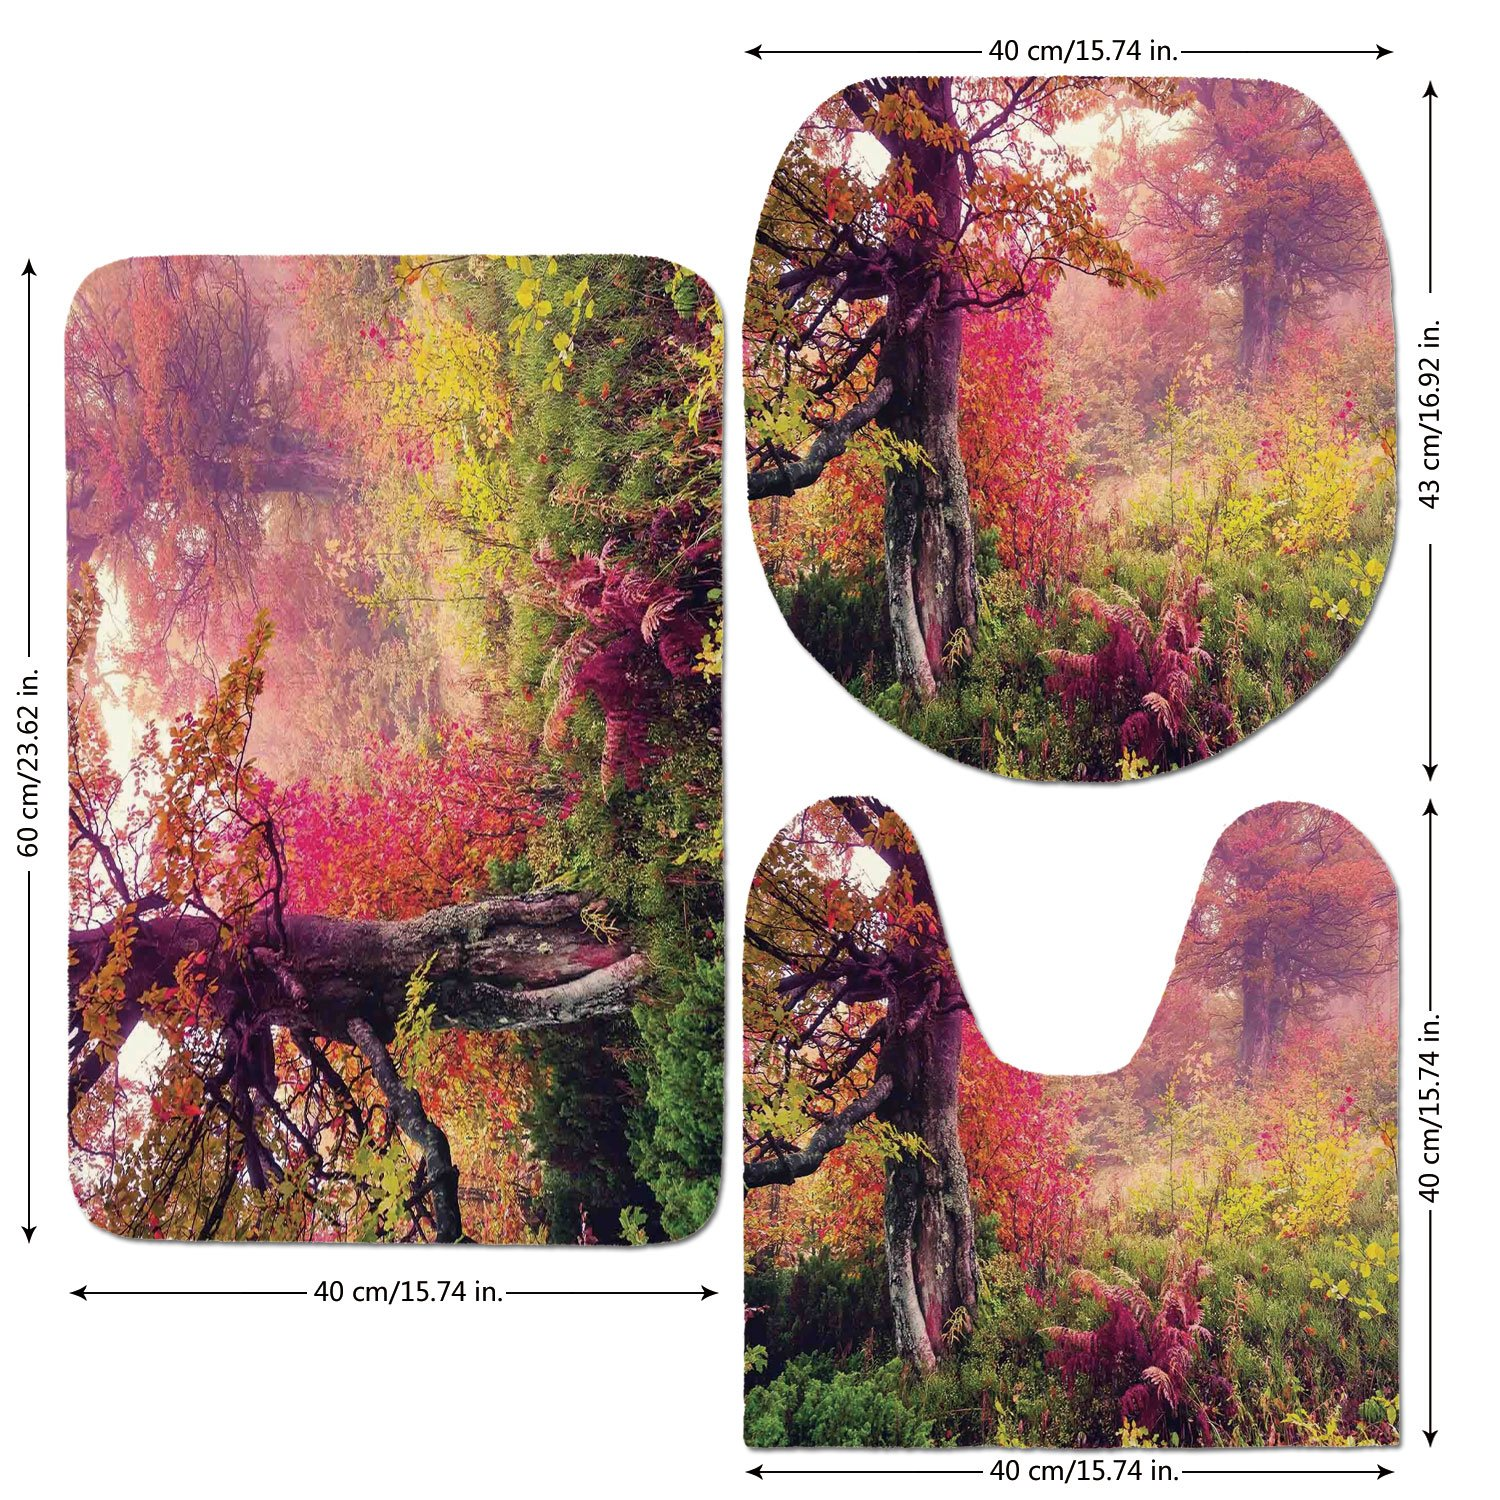 3 Piece Bathroom Mat Set,Farm-House-Decor,Fairy-Majestic-Landscape-with-Autumn-Trees-in-Forest-Natural-Garden-in-Ukraine,Red-Green-Brown.jpg,Bath Mat,Bathroom Carpet Rug,Non-Slip